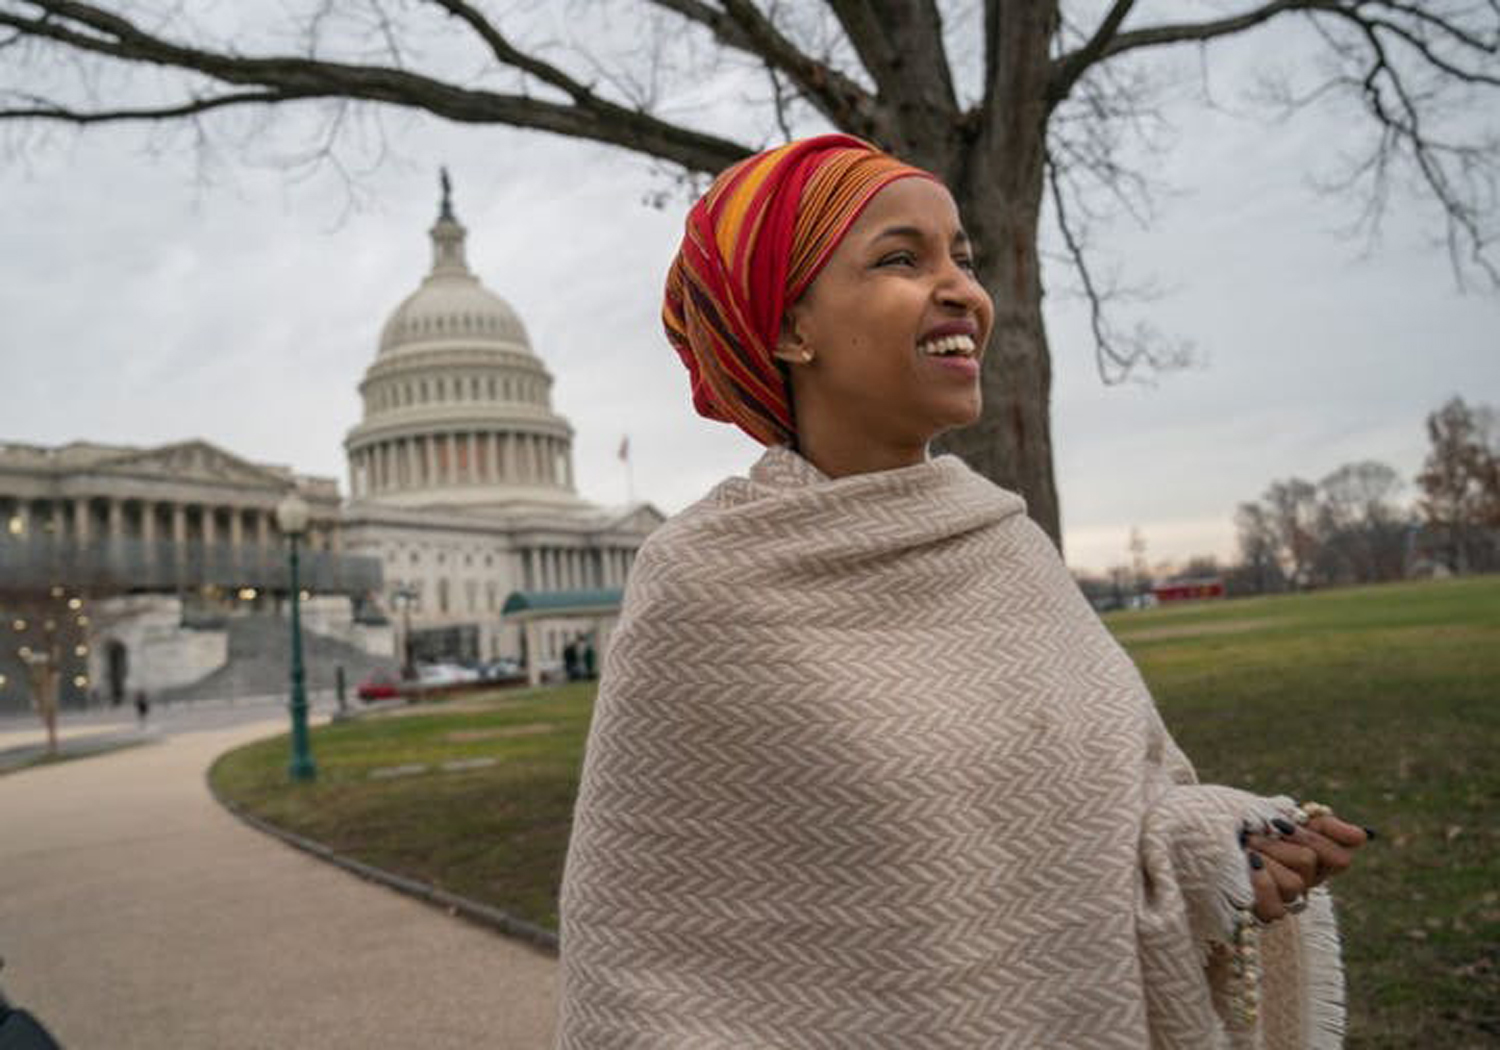 U.S. Rep. Ilhan Omar, D-Minn., walking from her new office in the Longworth House Office Building to the U.S. Capitol, a few hours before being sworn in as a member of Congress.